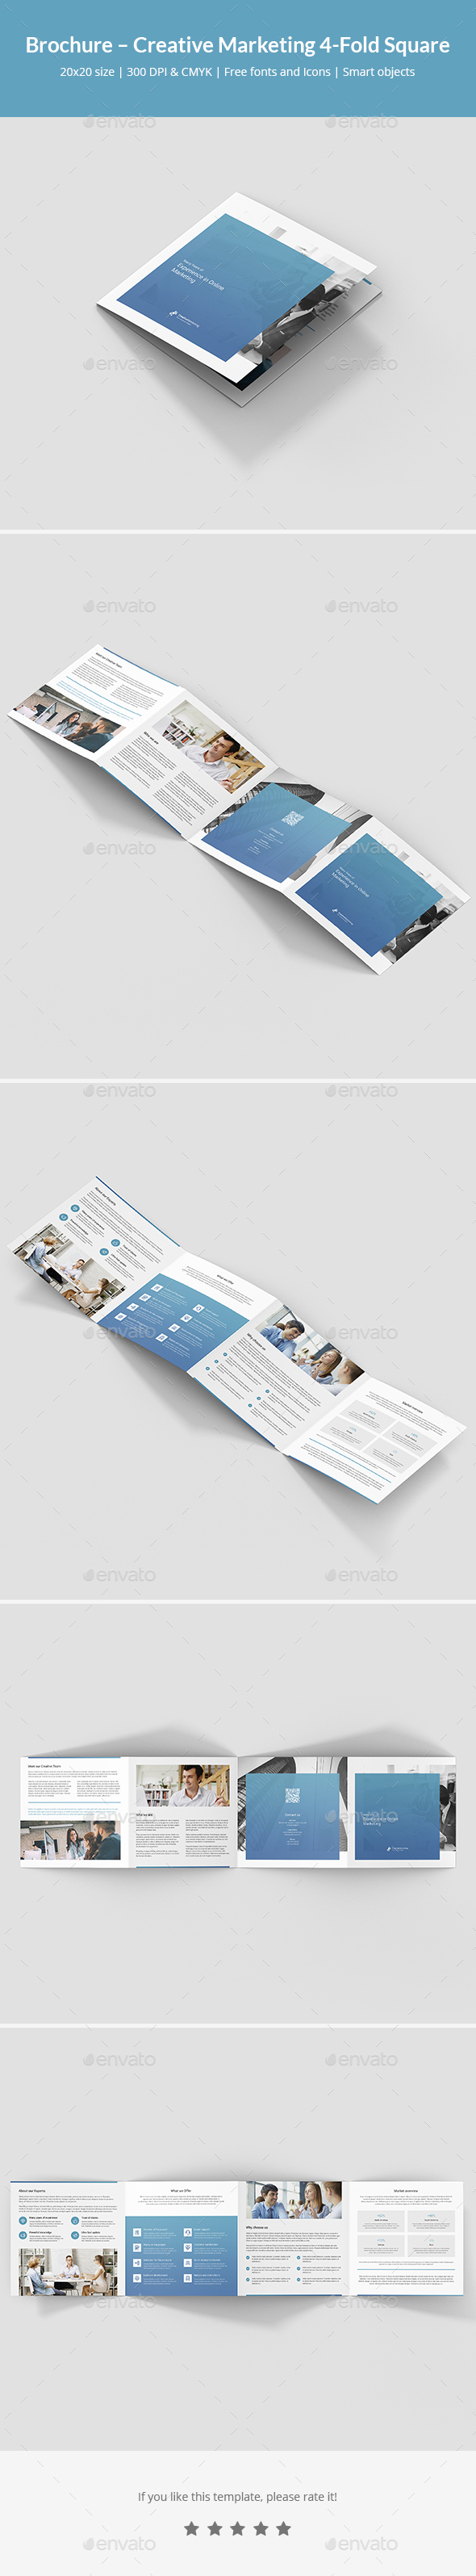 Brochure – Creative Marketing 4-Fold Square - Corporate Brochures